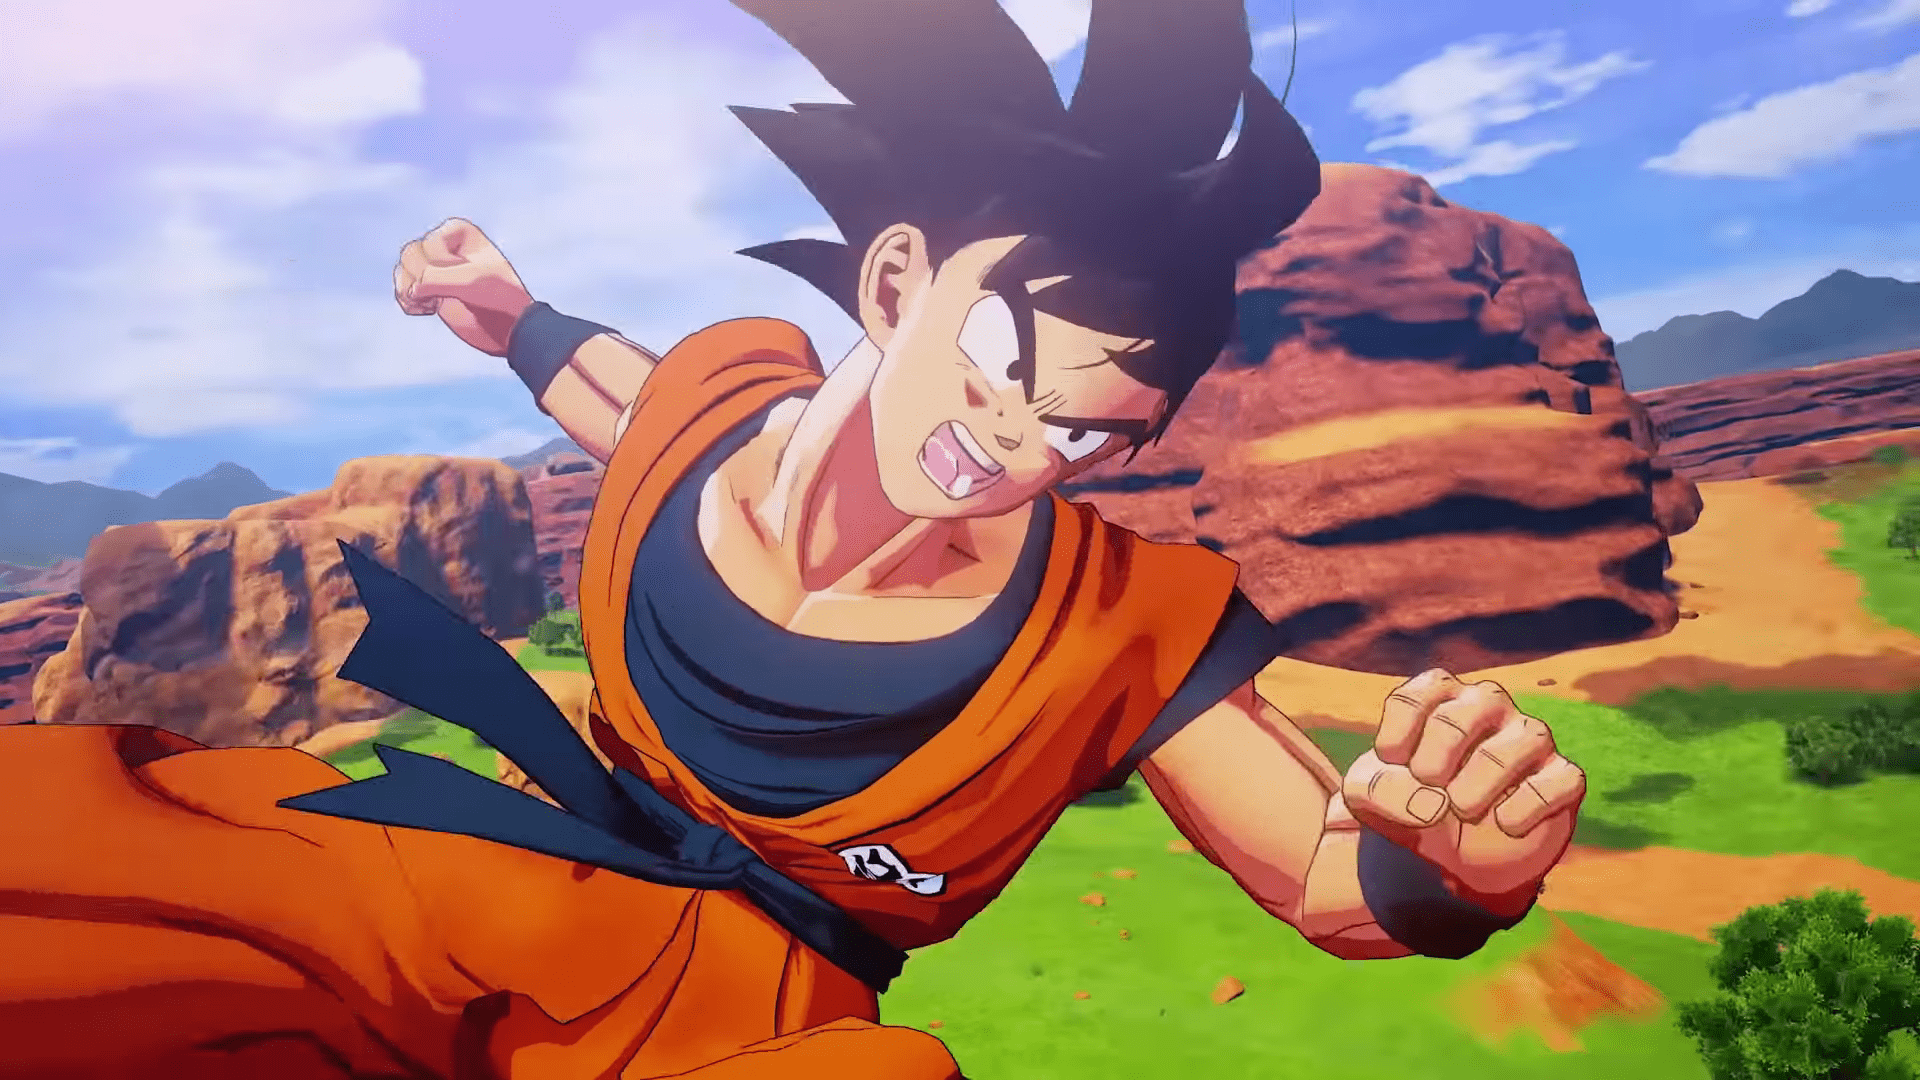 The Super Form Of Broly Marks The Last Roster Addition For Dragon Ball FighterZ In 2019